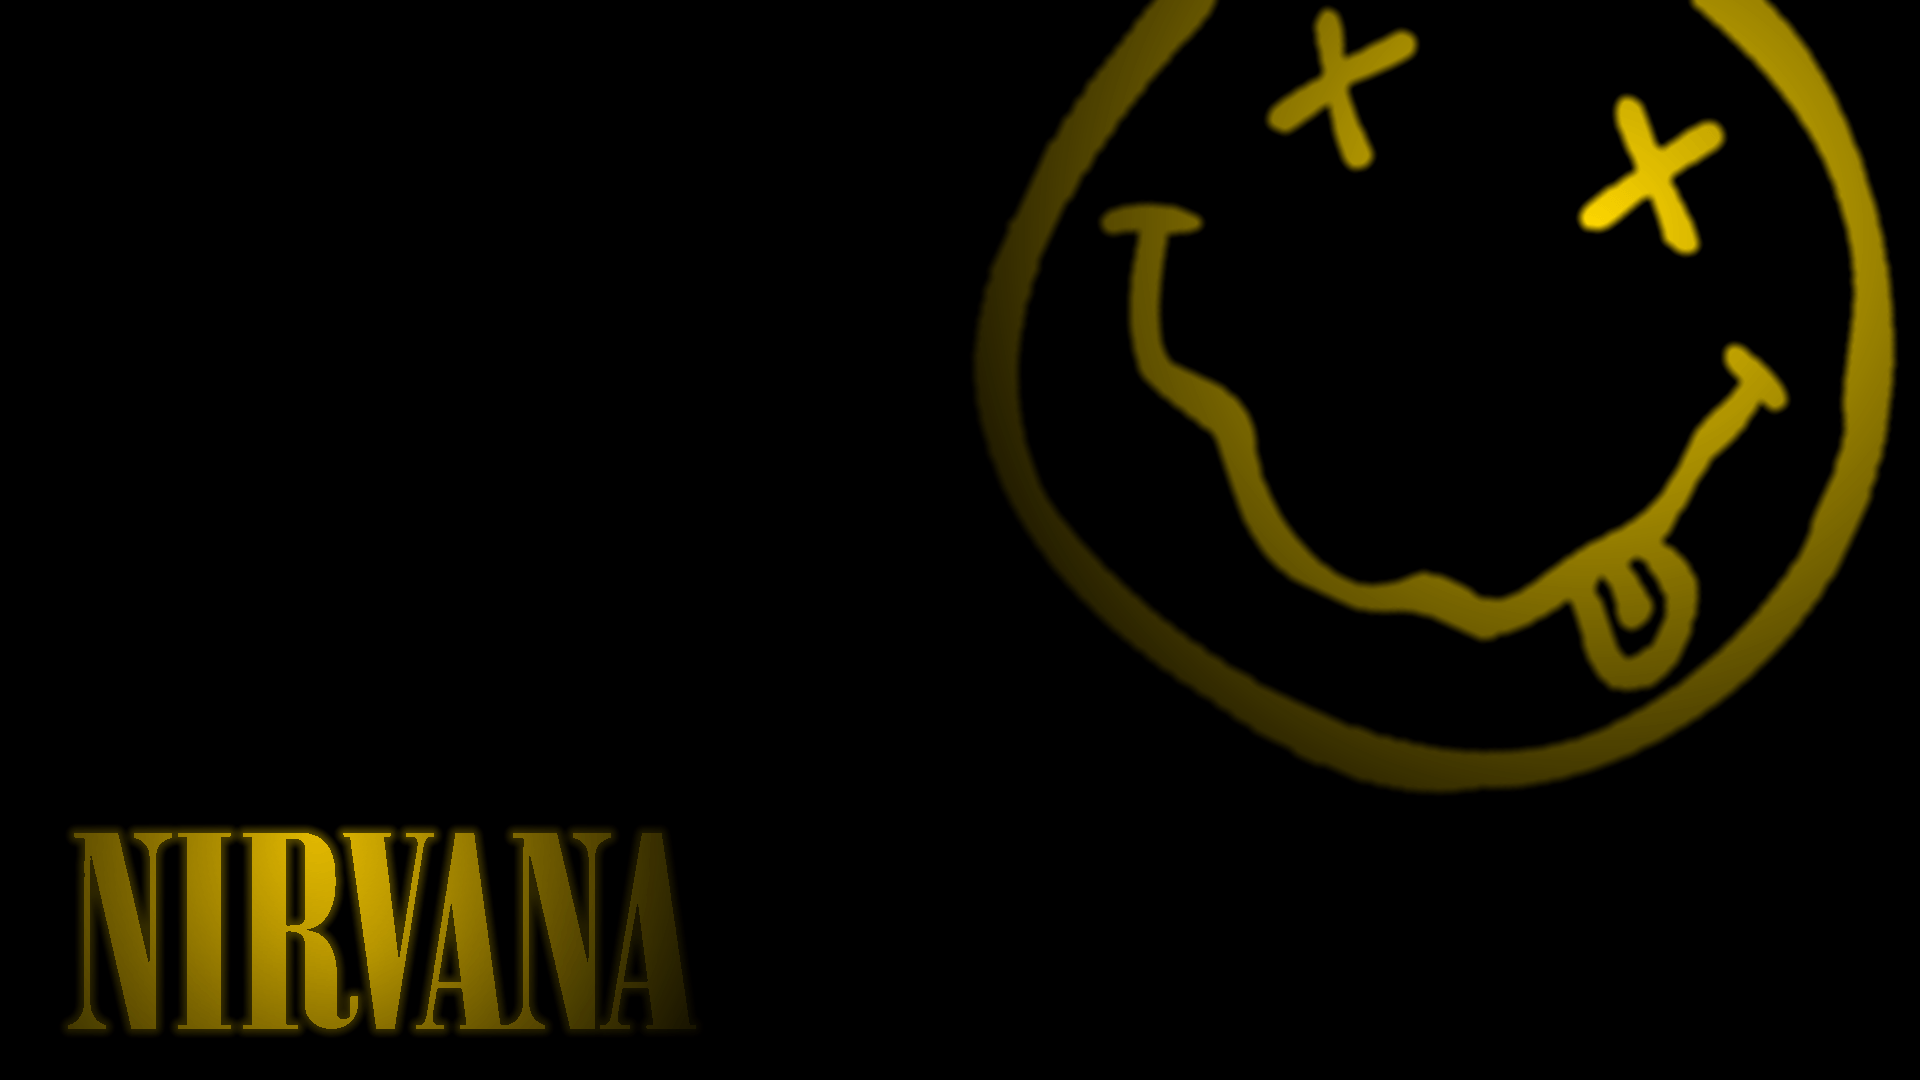 Nirvana Logo Exclusive HD Wallpapers